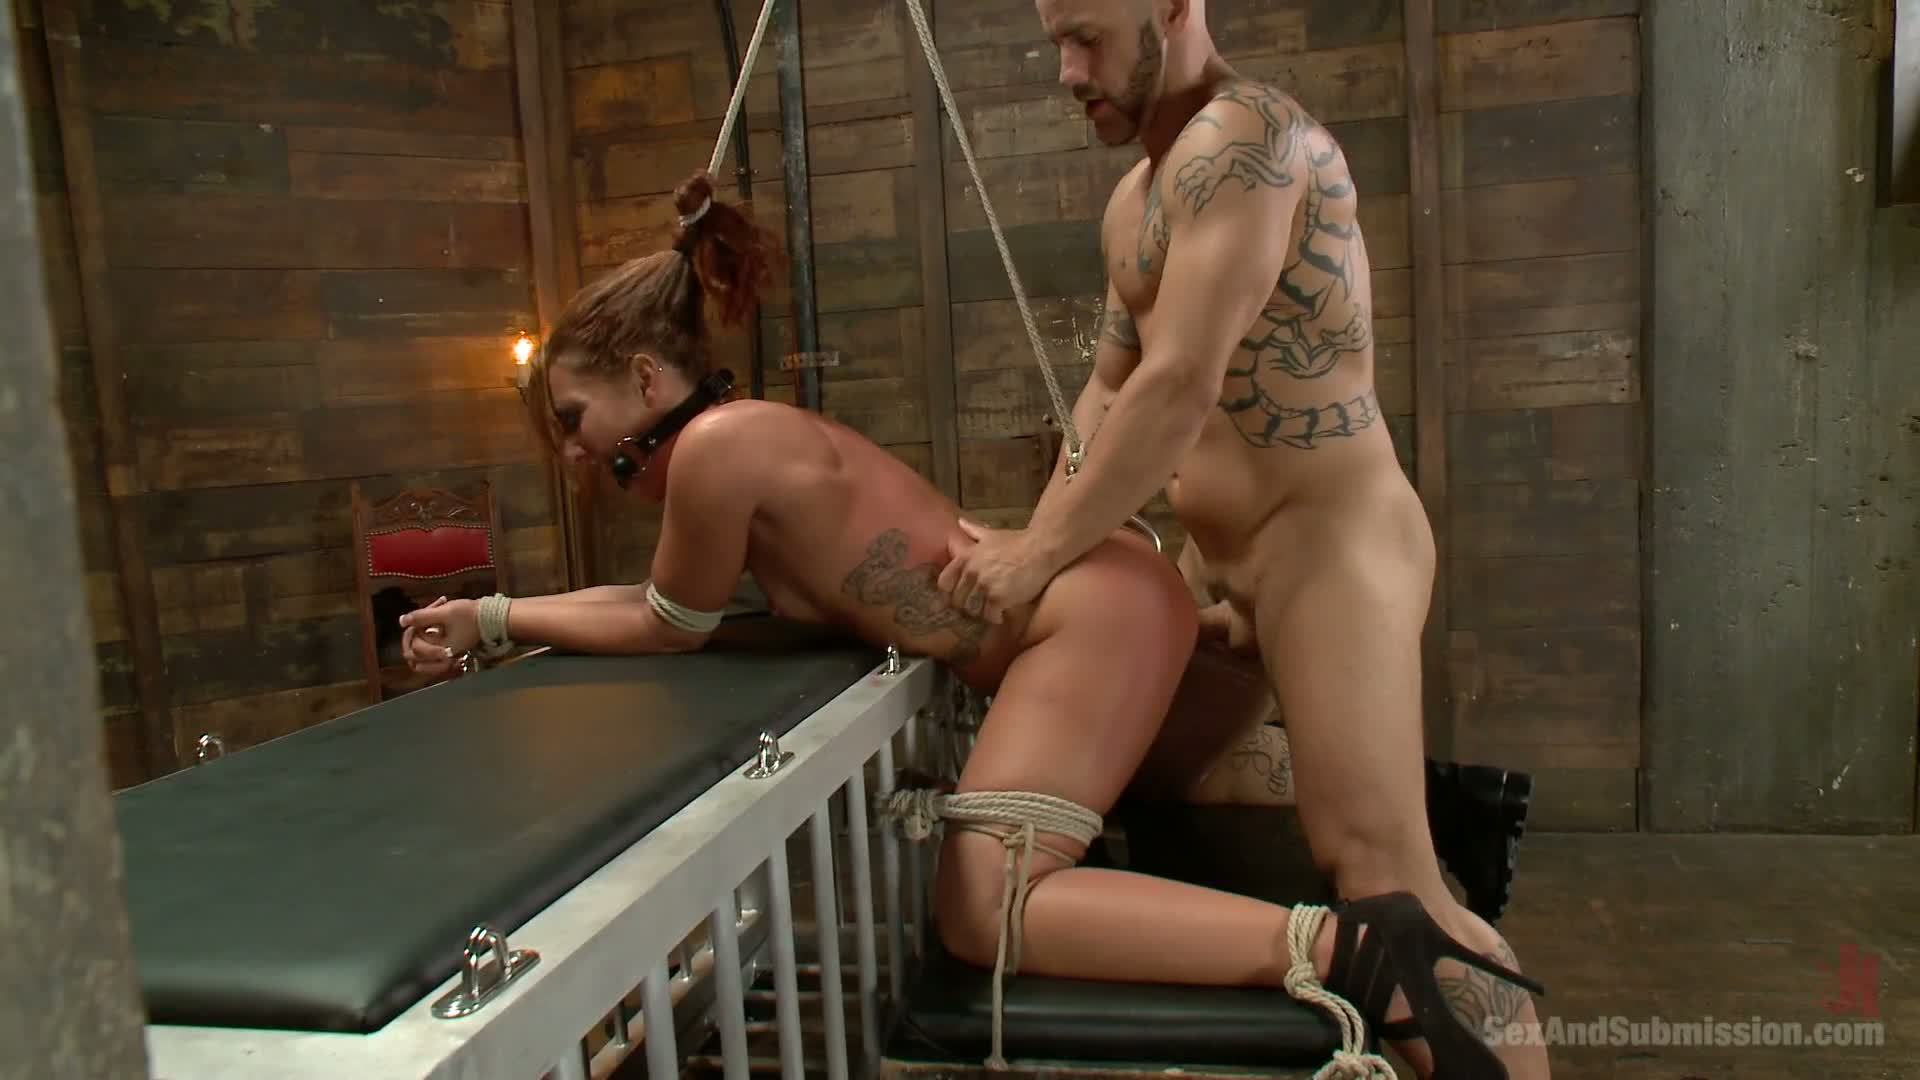 Anal Sex With Bondage savannah fox in bondage role play in anal sex - bdsm you